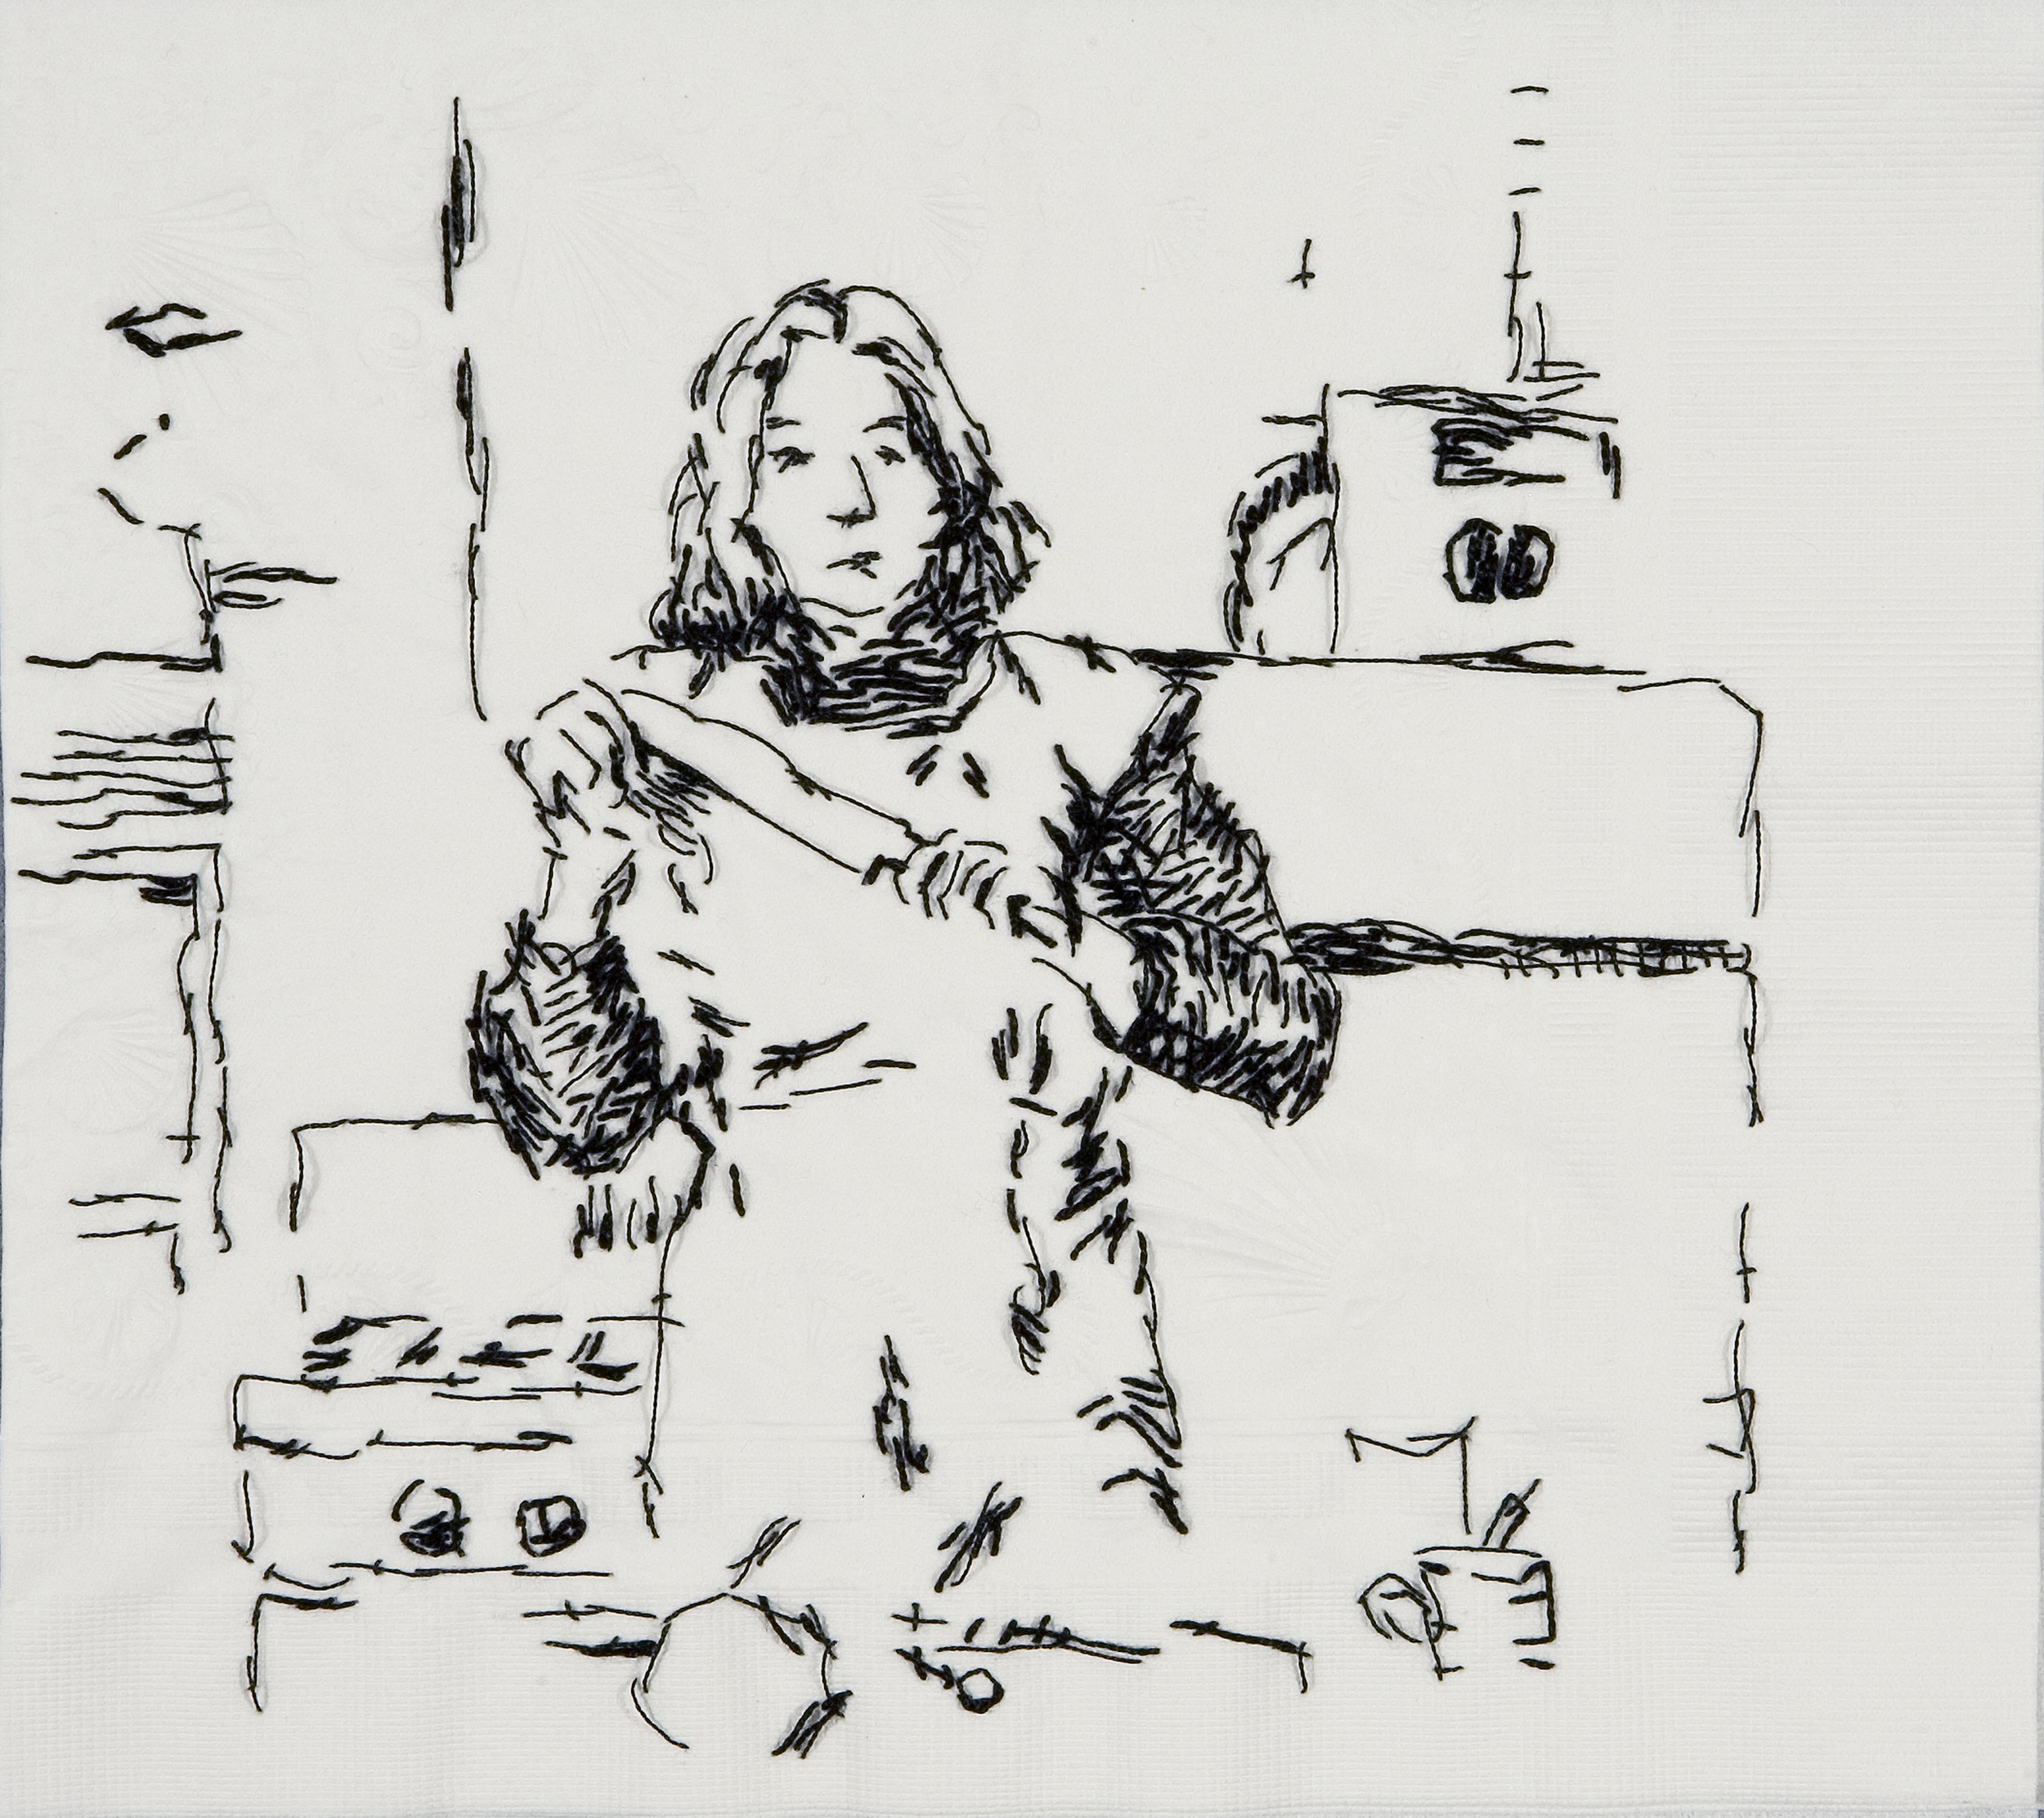 "Sister Wife Martha (Semiotics of the Kitchen, 1975)  Black thread on paper napkin, 8"" x 8.5"", 2008"